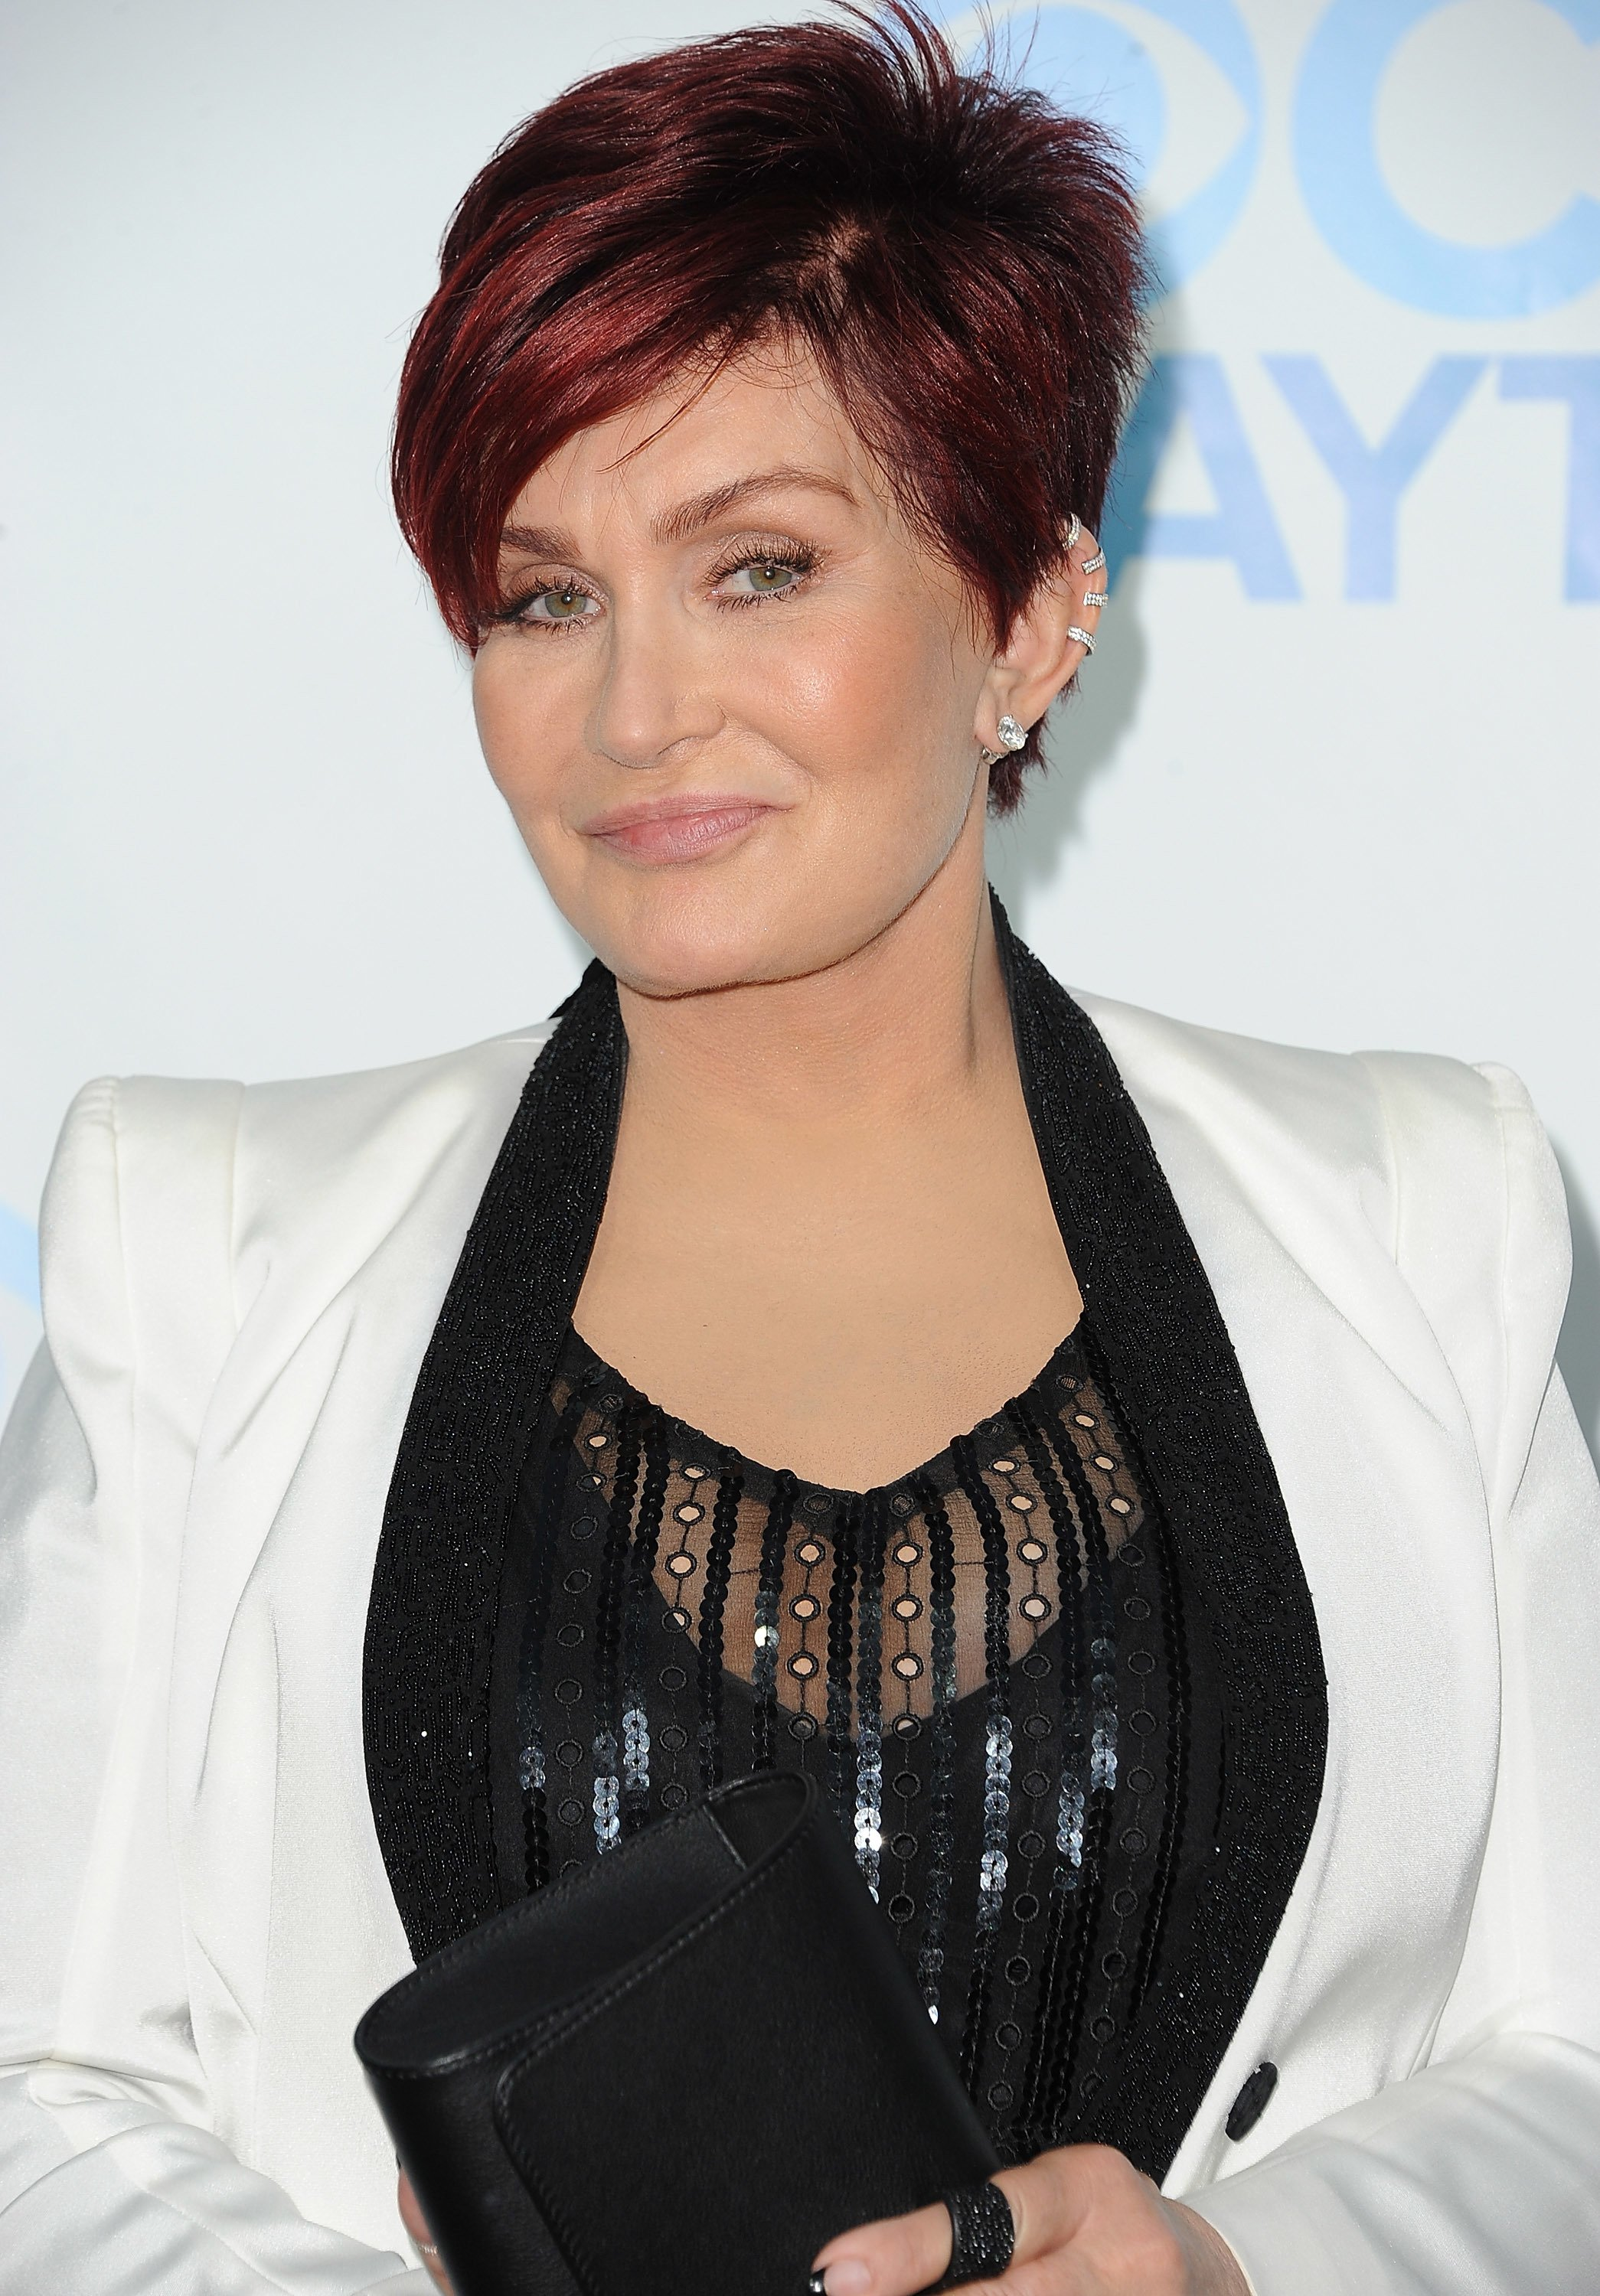 Sharon Osbourne attends the 41st Annual Daytime Emmy Awards CBS after party at The Beverly Hilton Hotel on June 22, 2014 in Beverly Hills, California | Photo: Getty Images